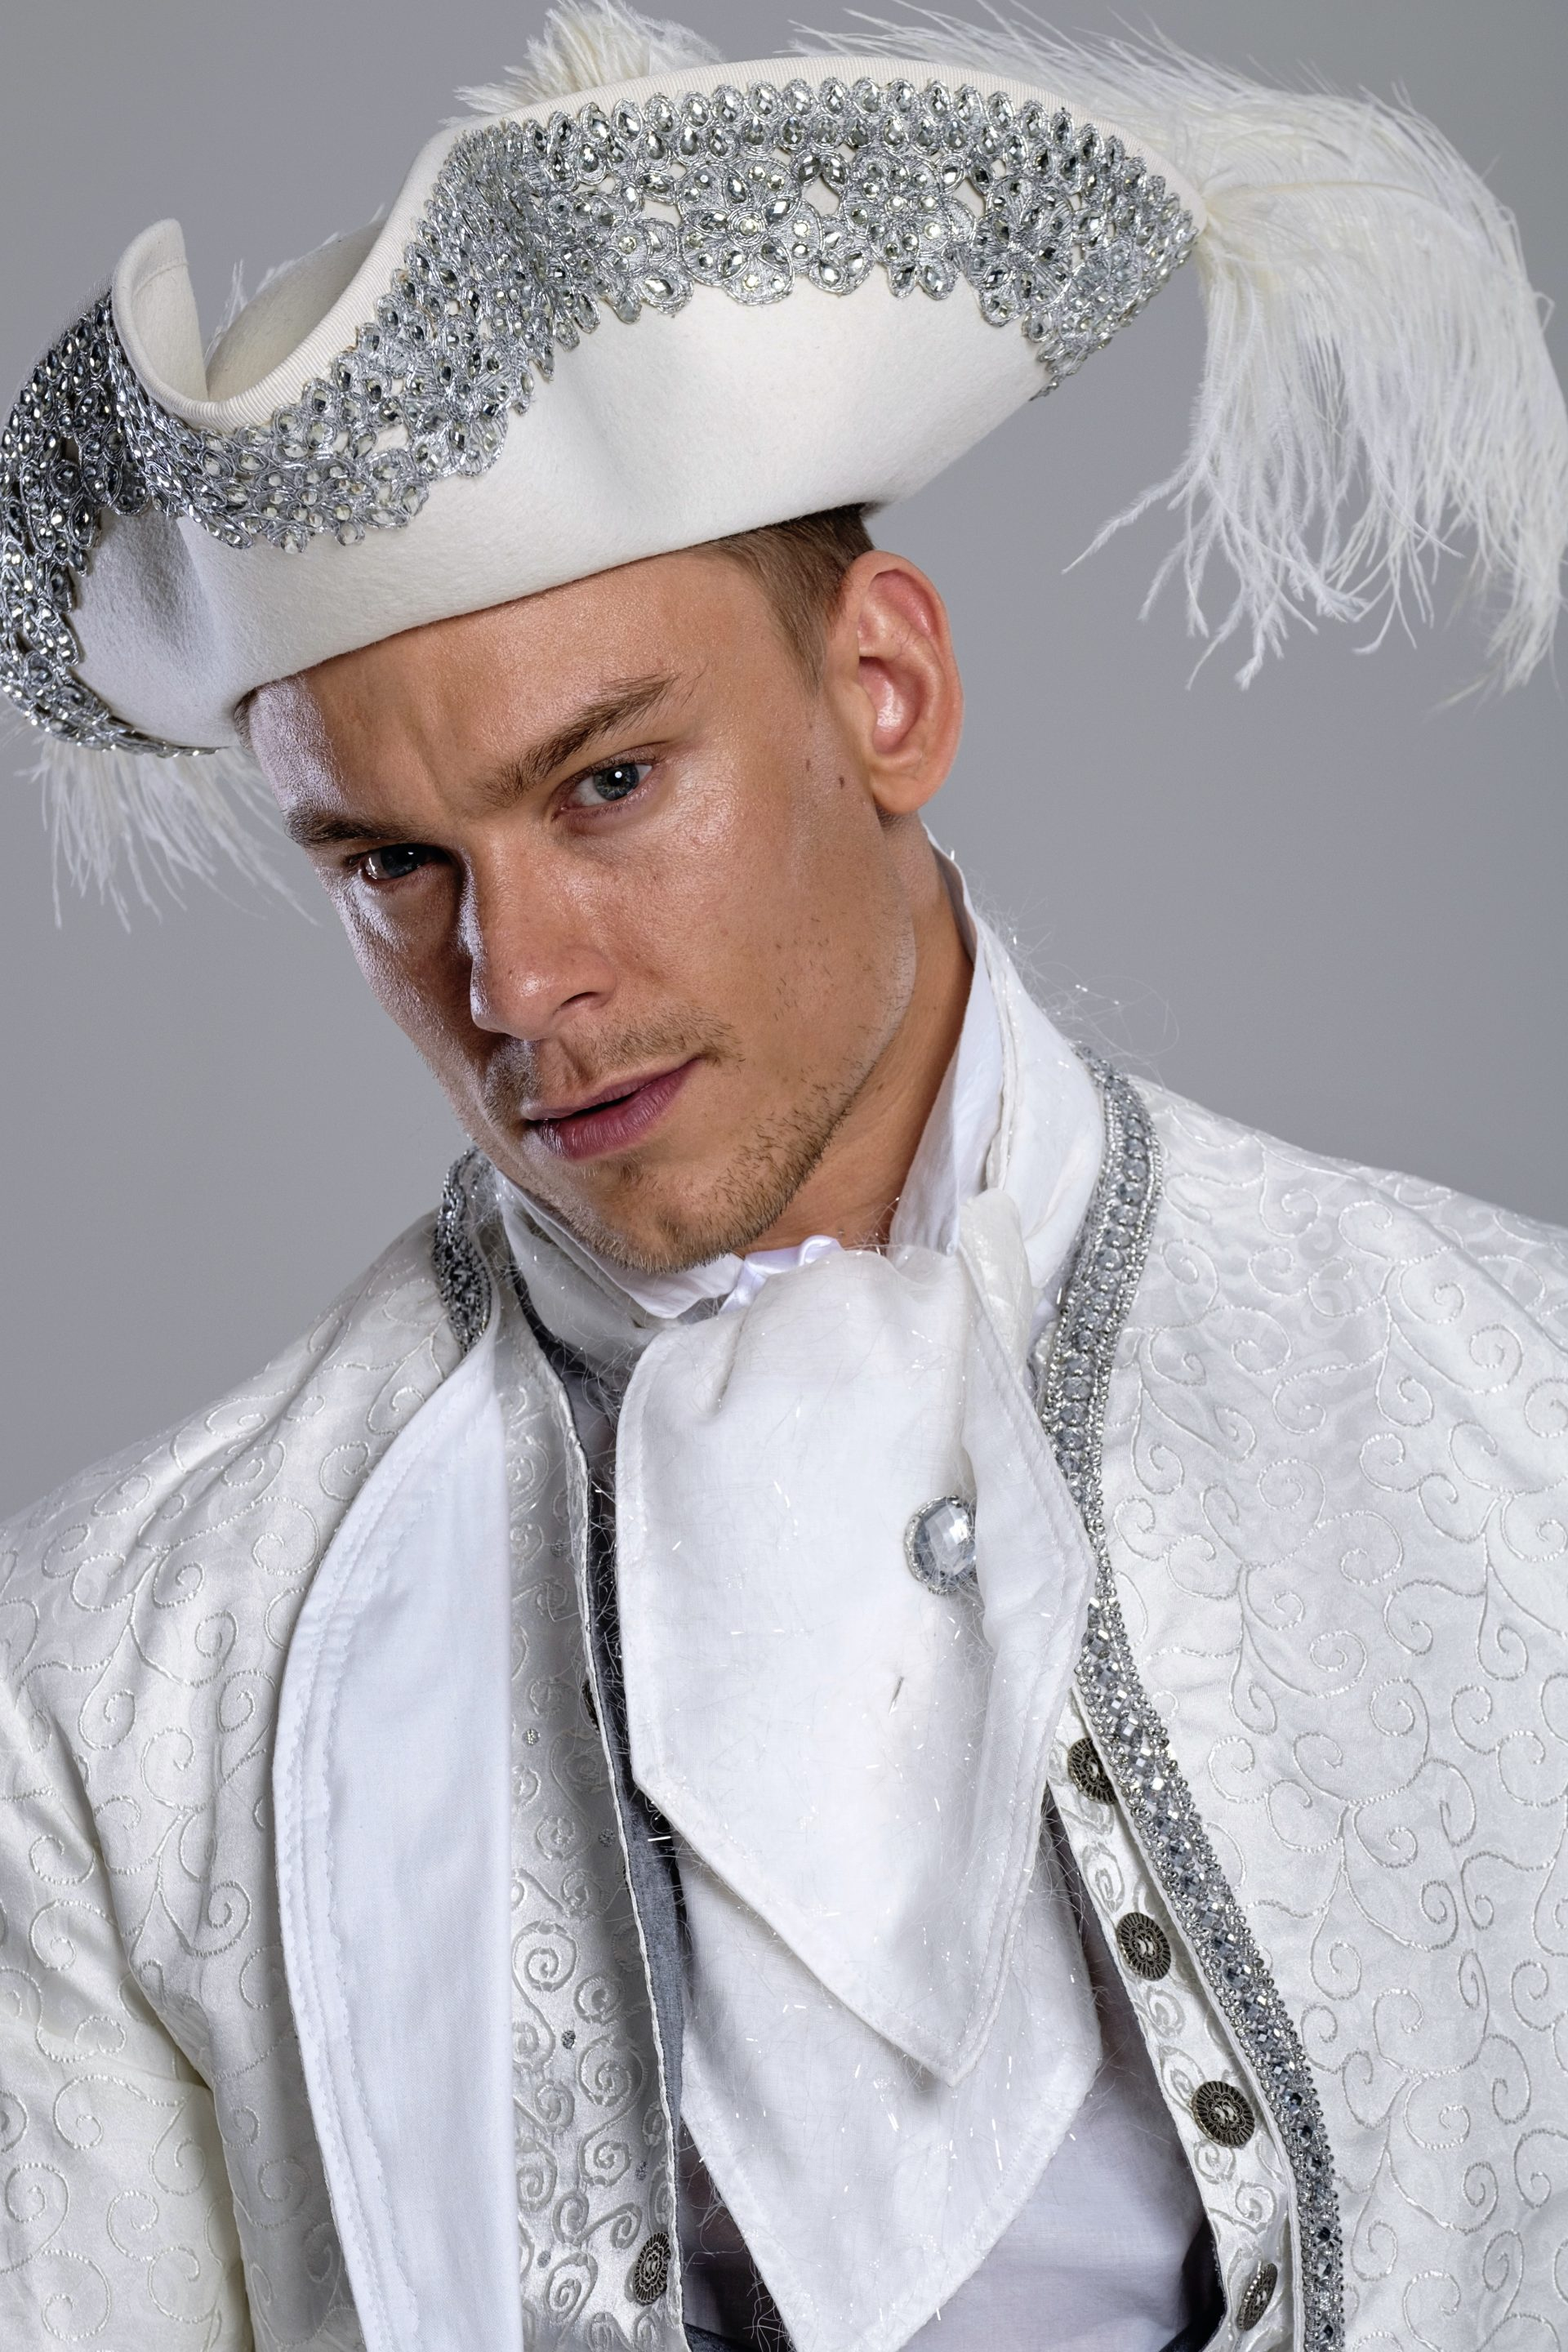 Prince Charming costume white silk footmen for events doorman Narnia themed party